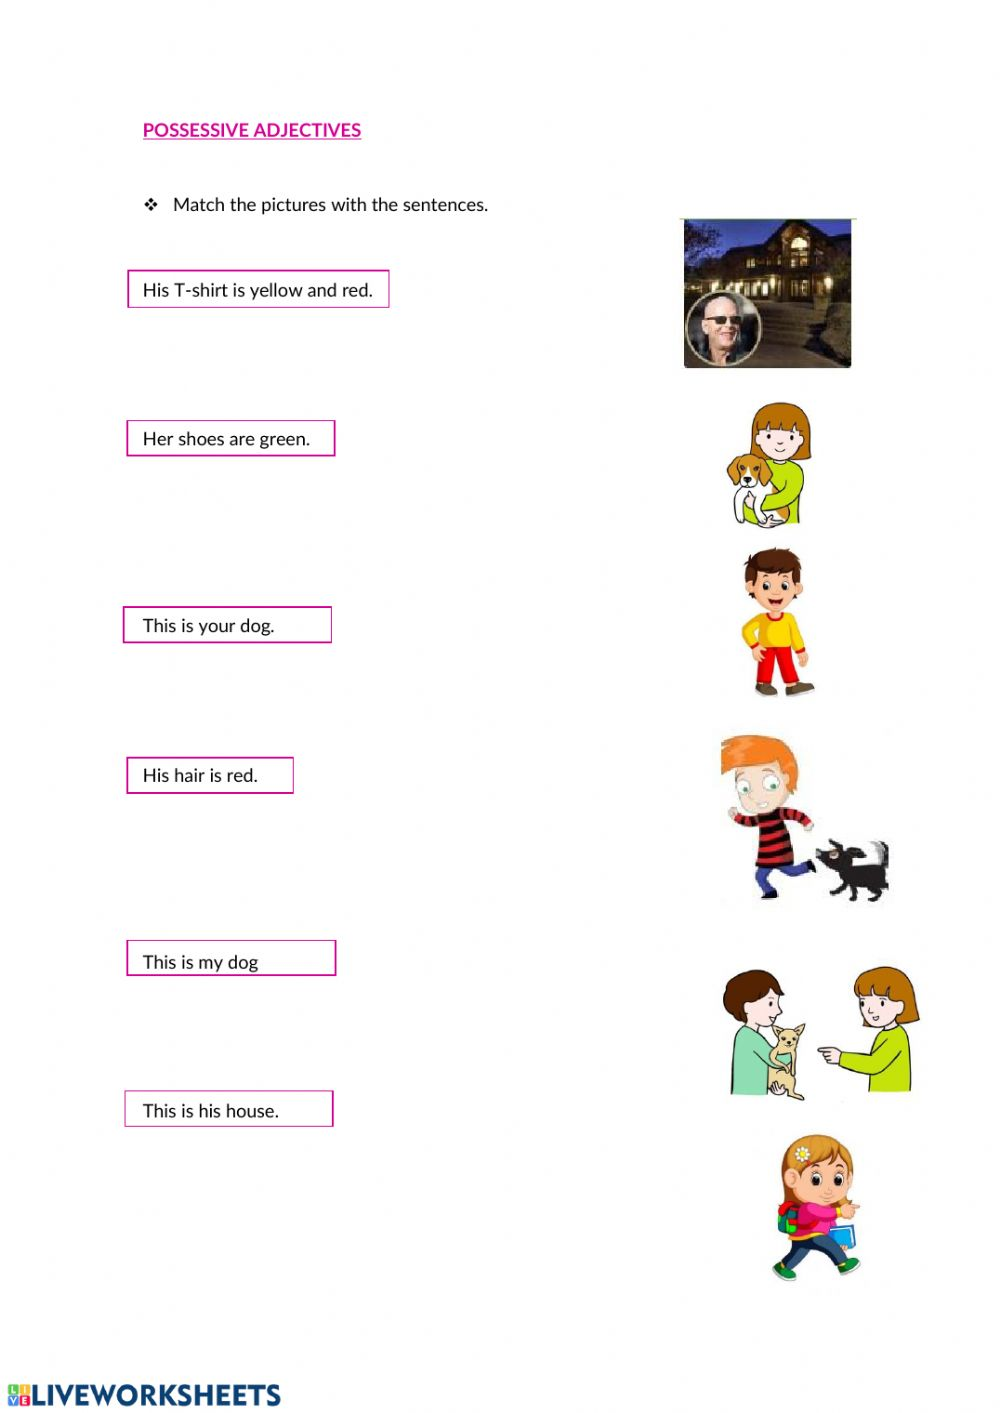 hight resolution of Possessive adjectives online exercise for 4th grade